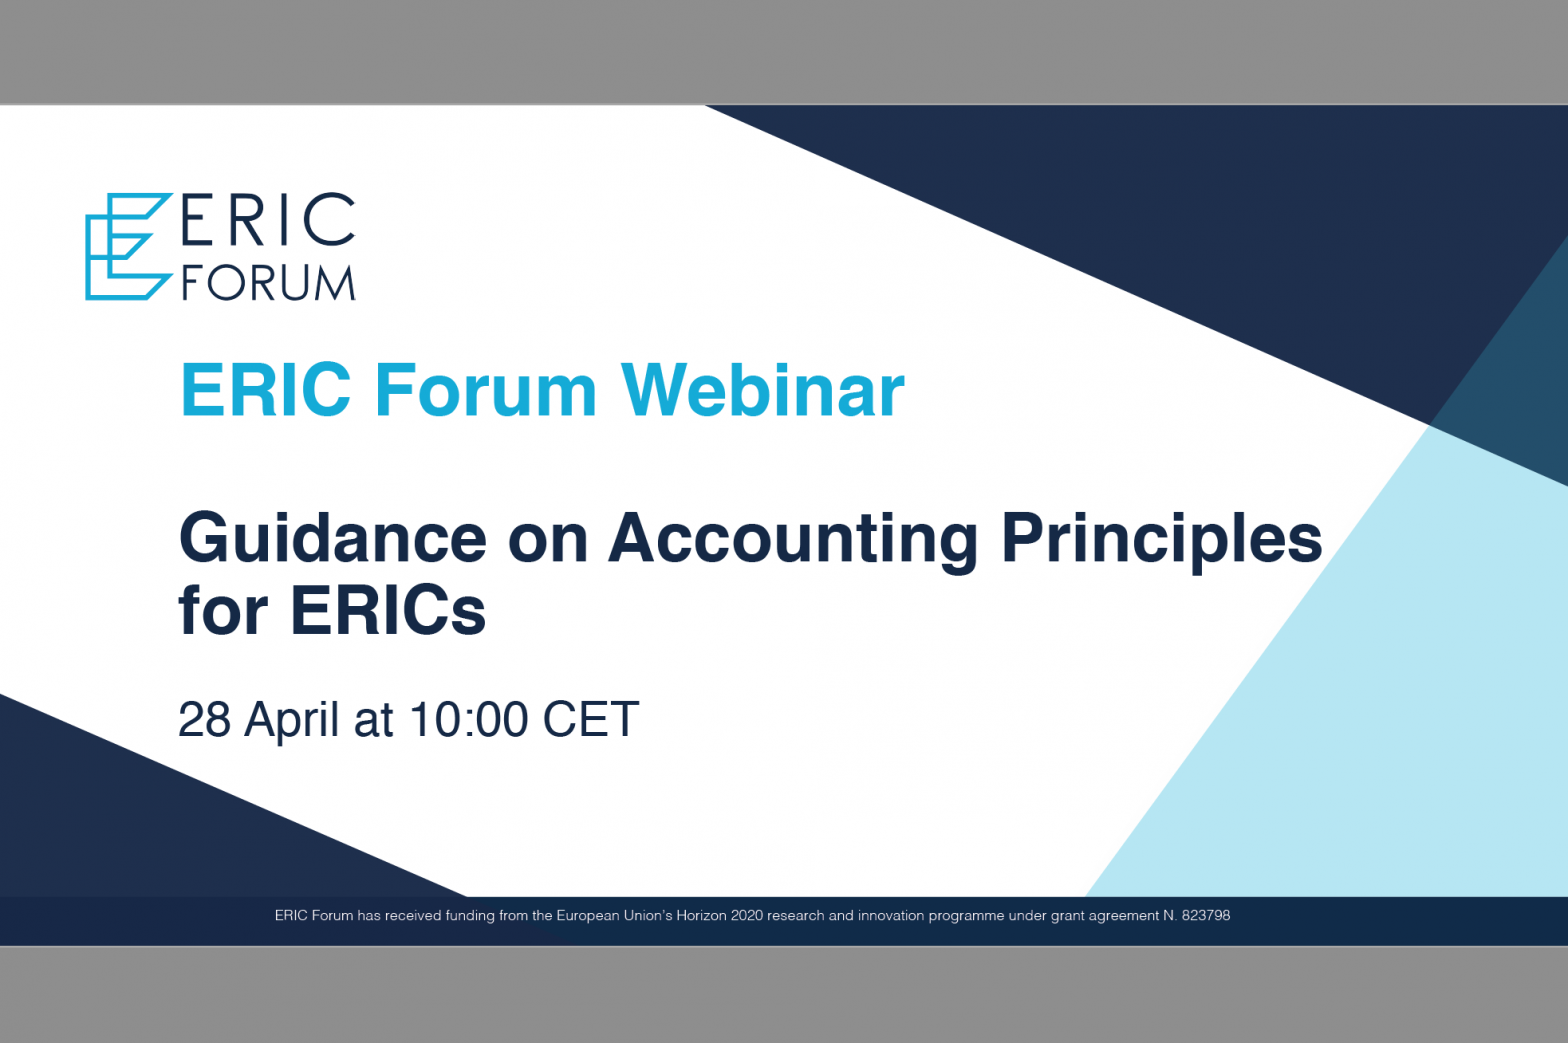 ERIC Forum Webinar: Guidance on Accounting Principles for ERICs